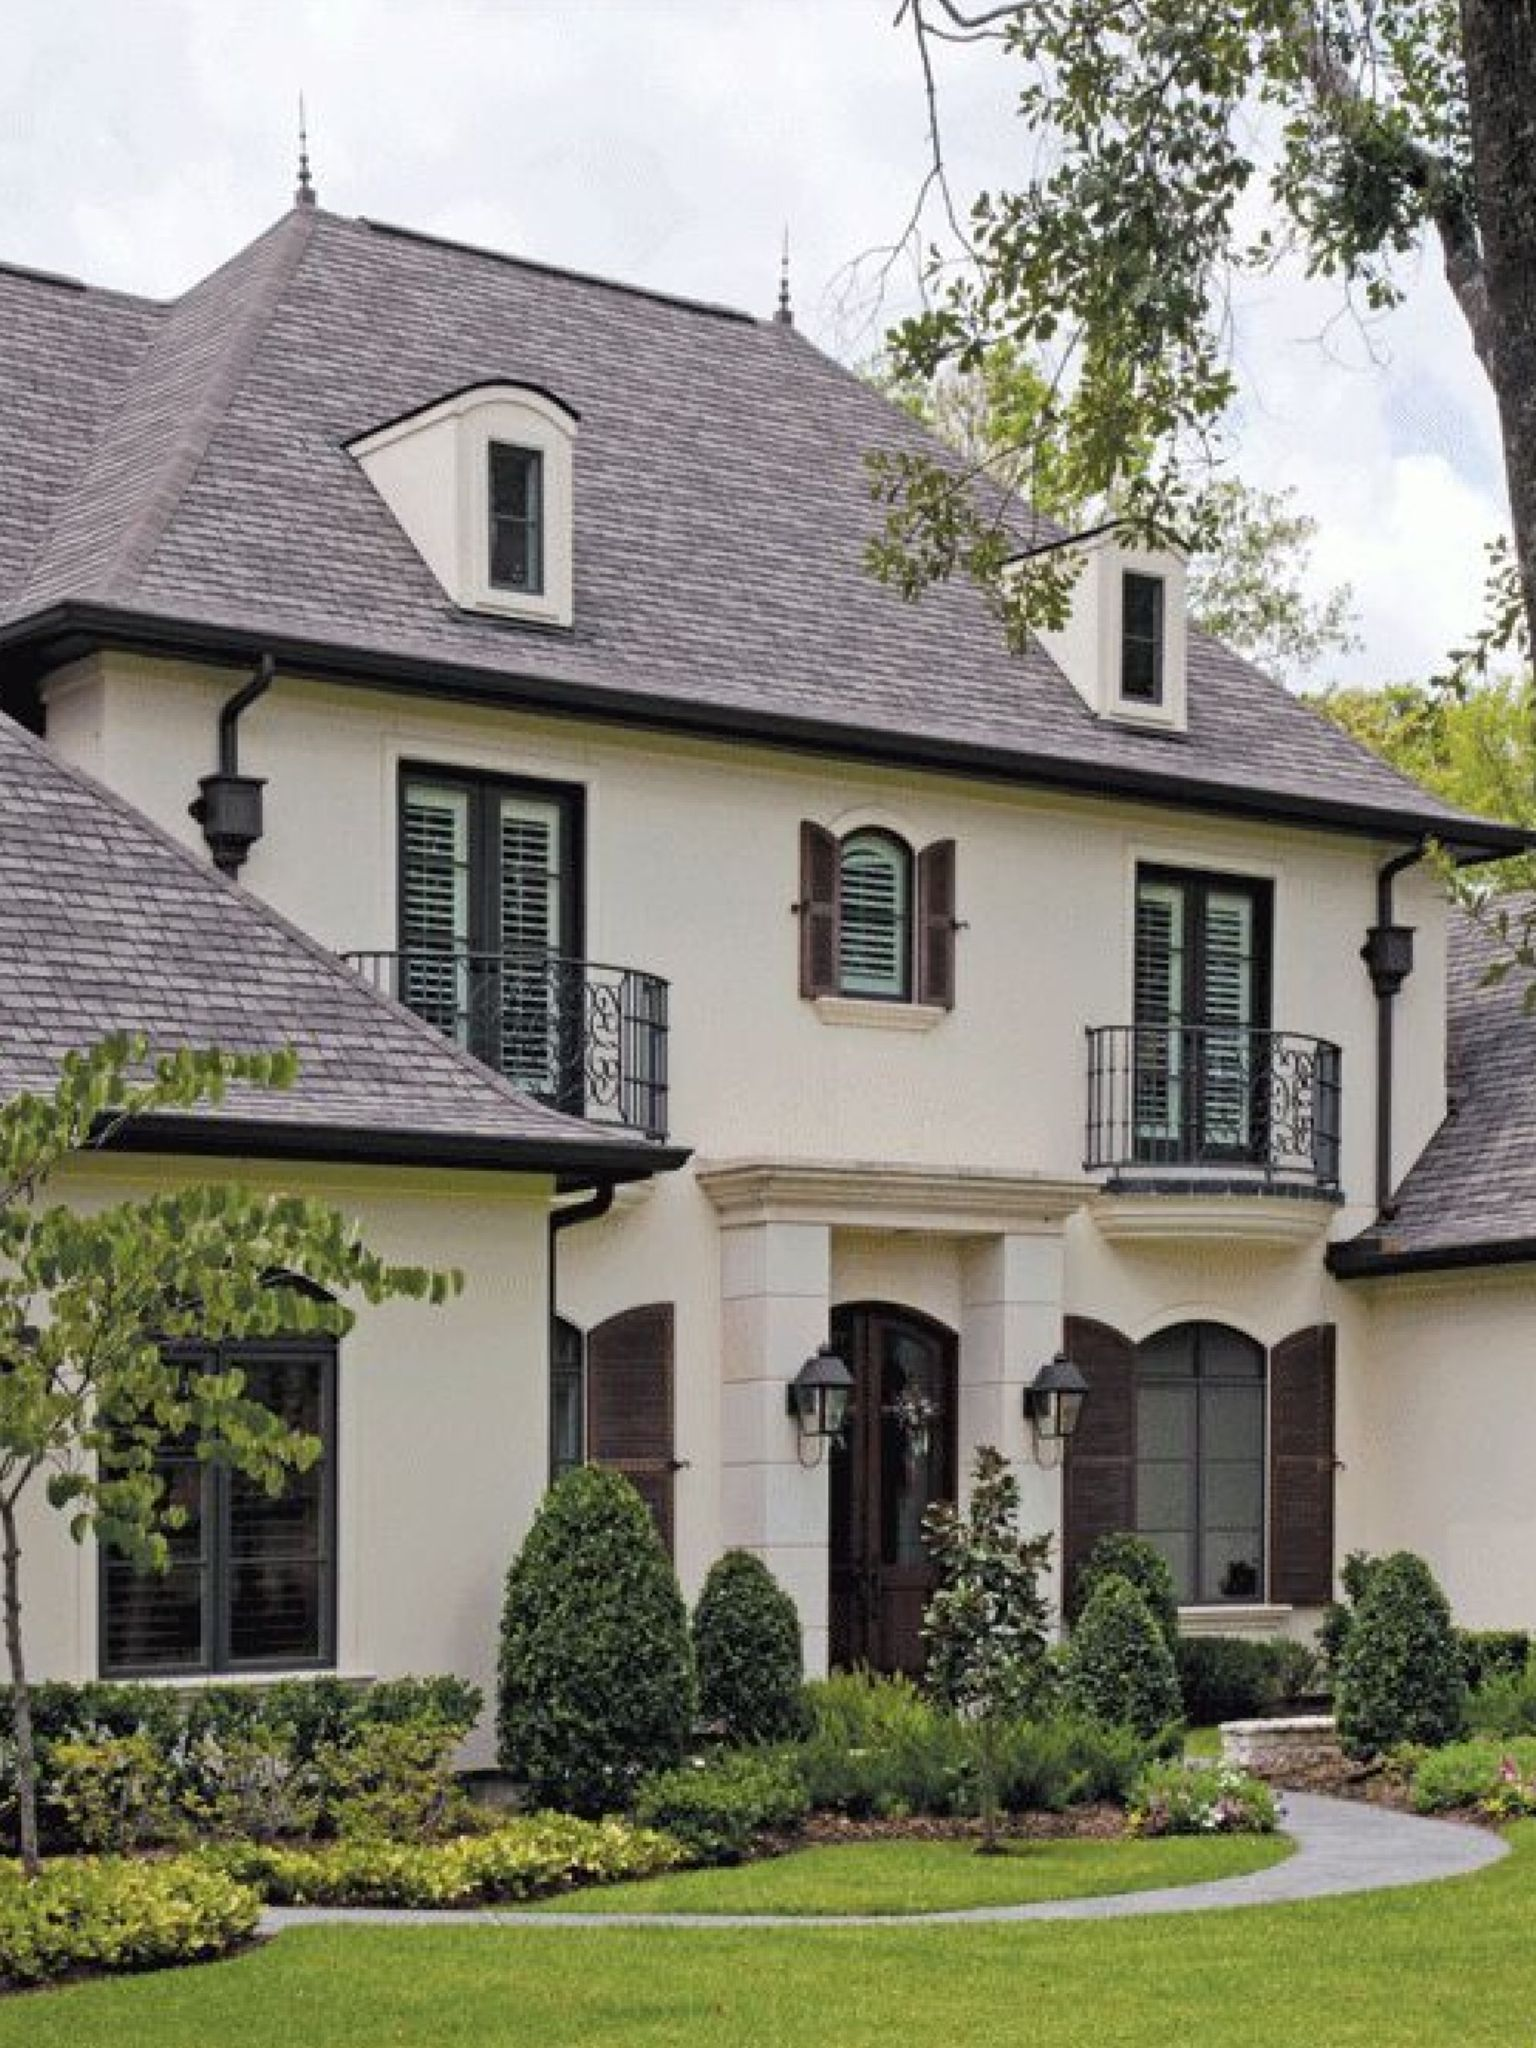 French Country Home Interior Design: Love The Off White And The Black Trim On This House